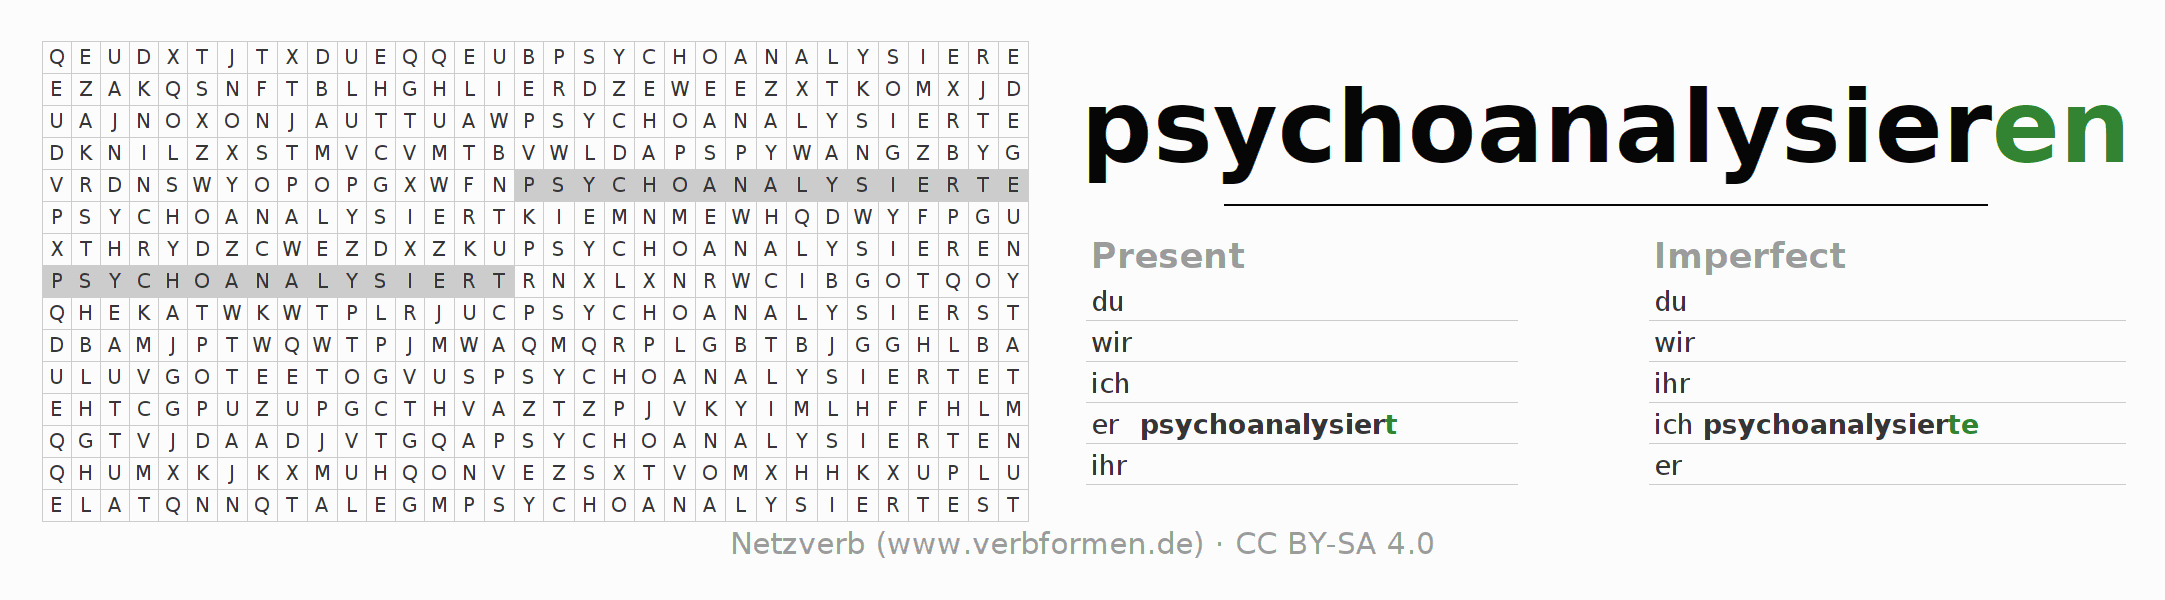 Word search puzzle for the conjugation of the verb psychoanalysieren